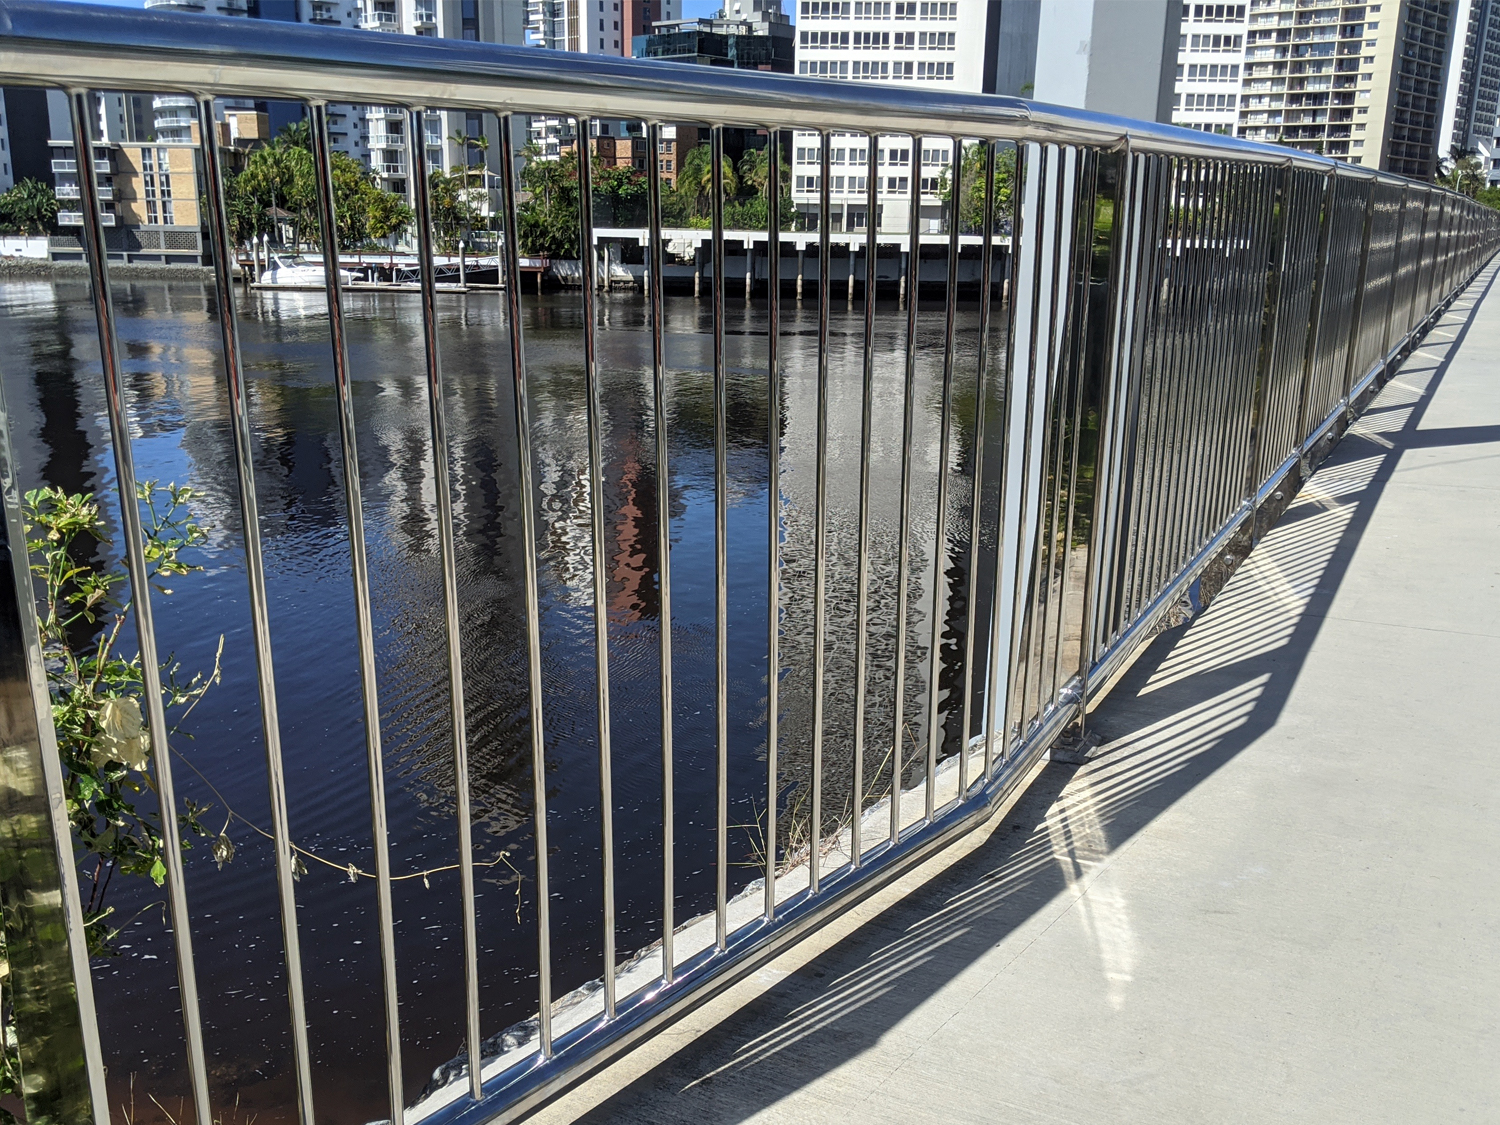 Cleaning outdoor stainless steel baustrade, Thomas Drive Bridge Surfers Paradise QLD